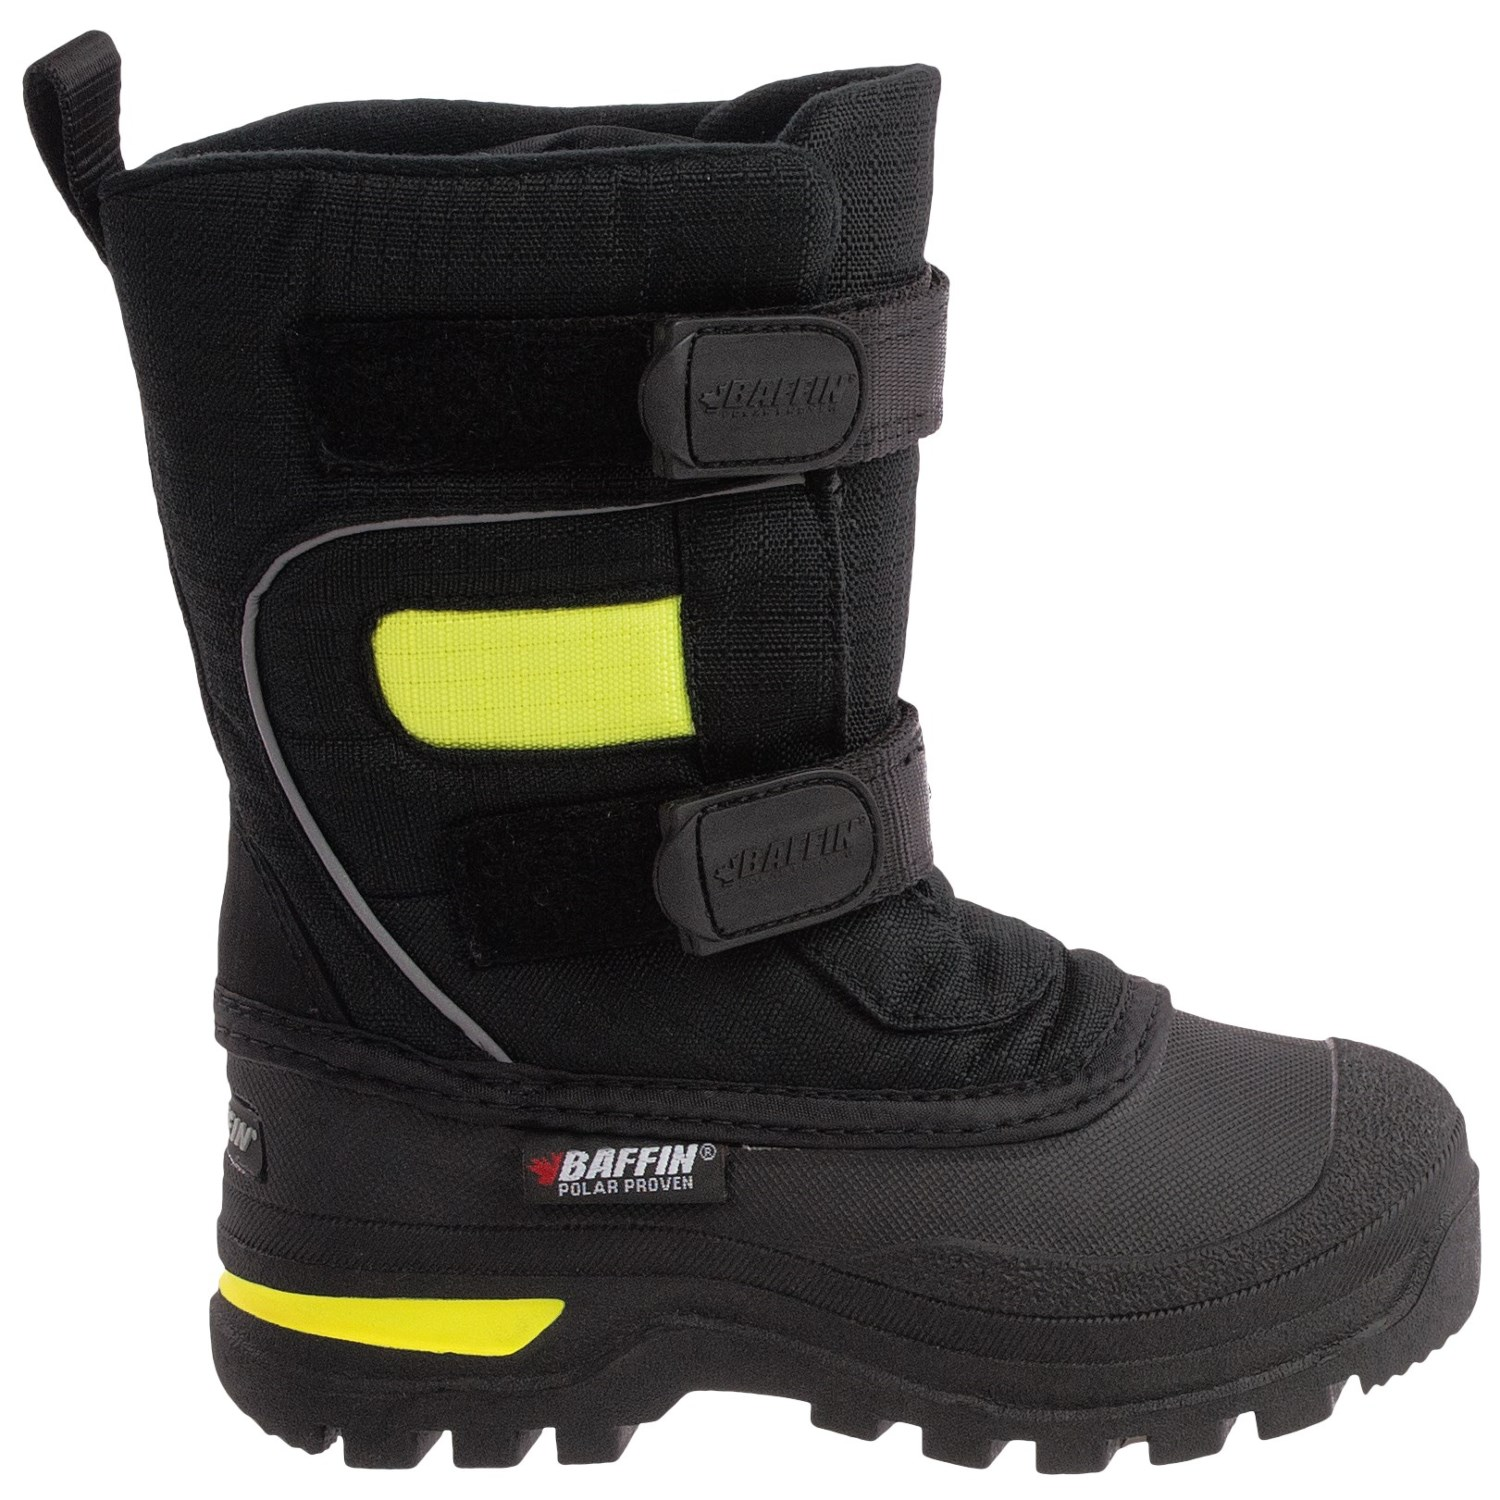 baffin bandit snow boots for little kids 9309a save 80